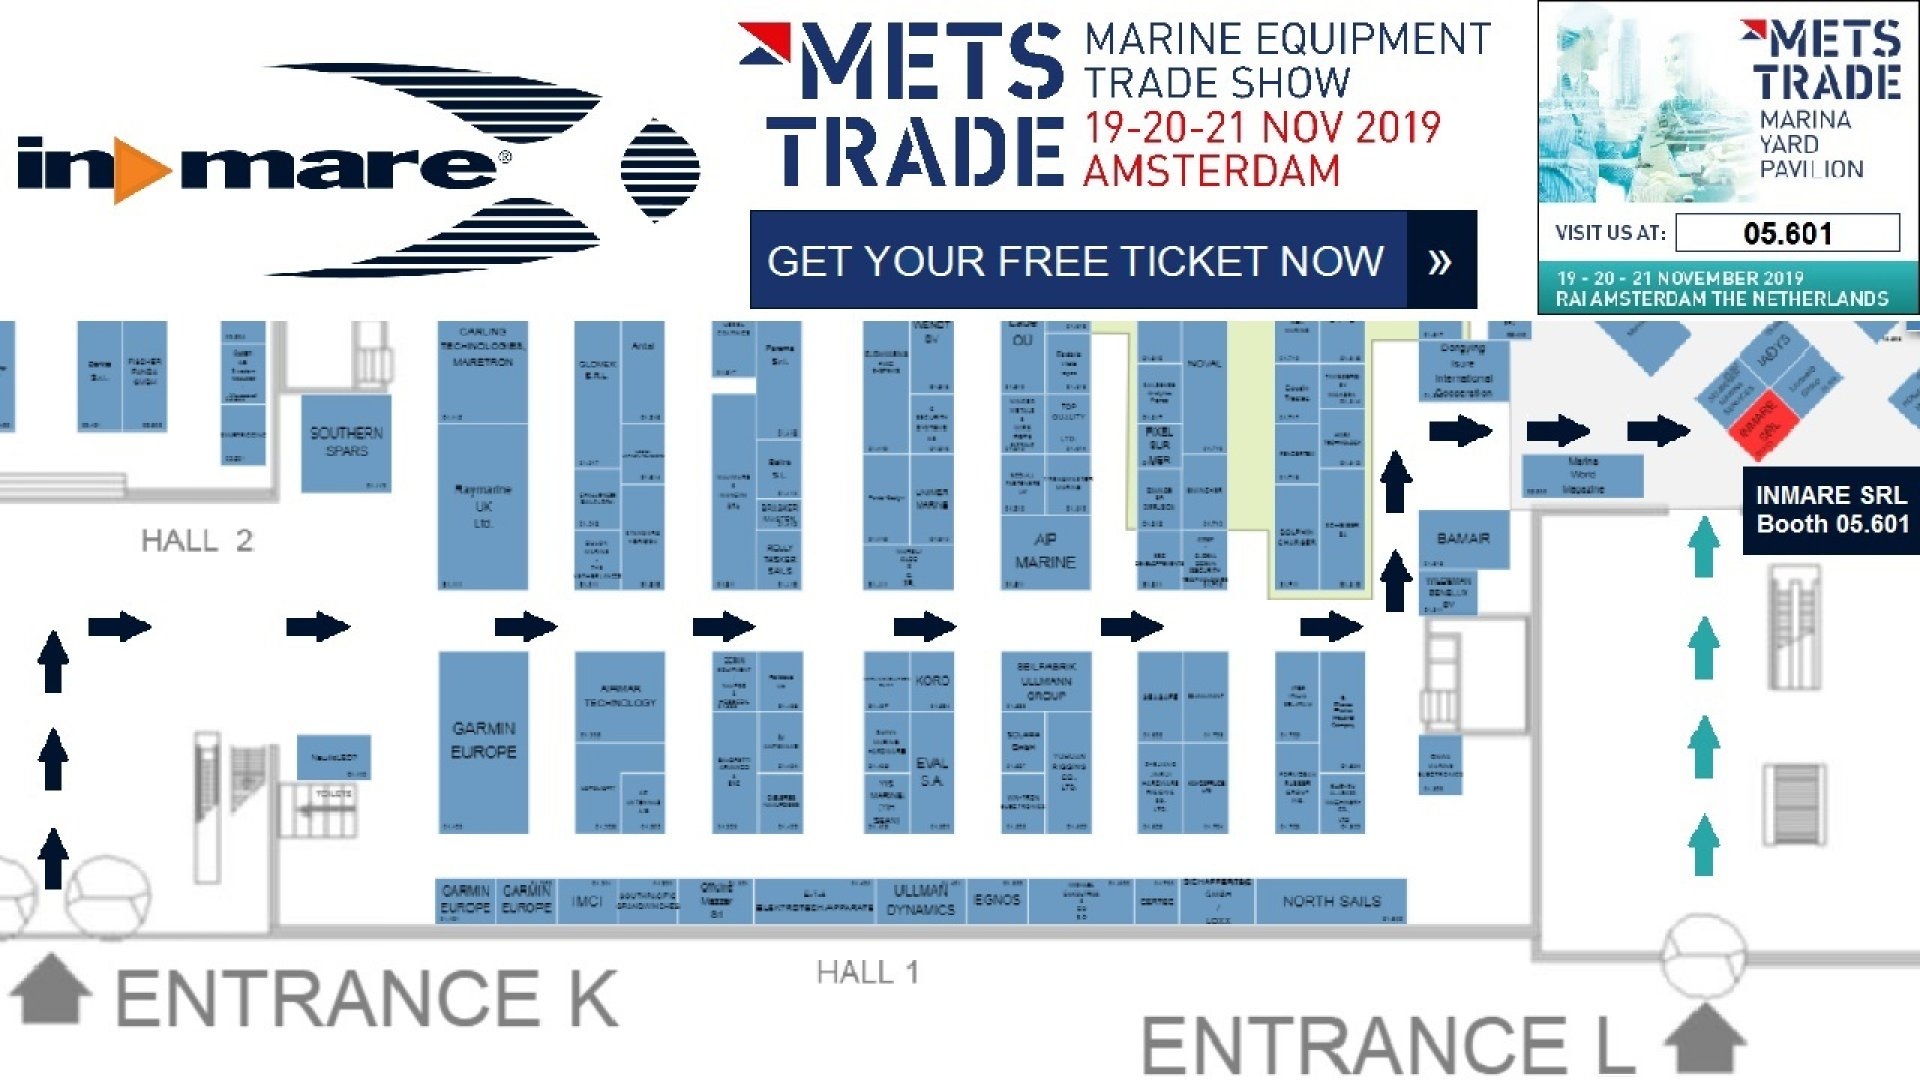 InMare invitation to METSTRADE 2019. Get your free ticket Now!